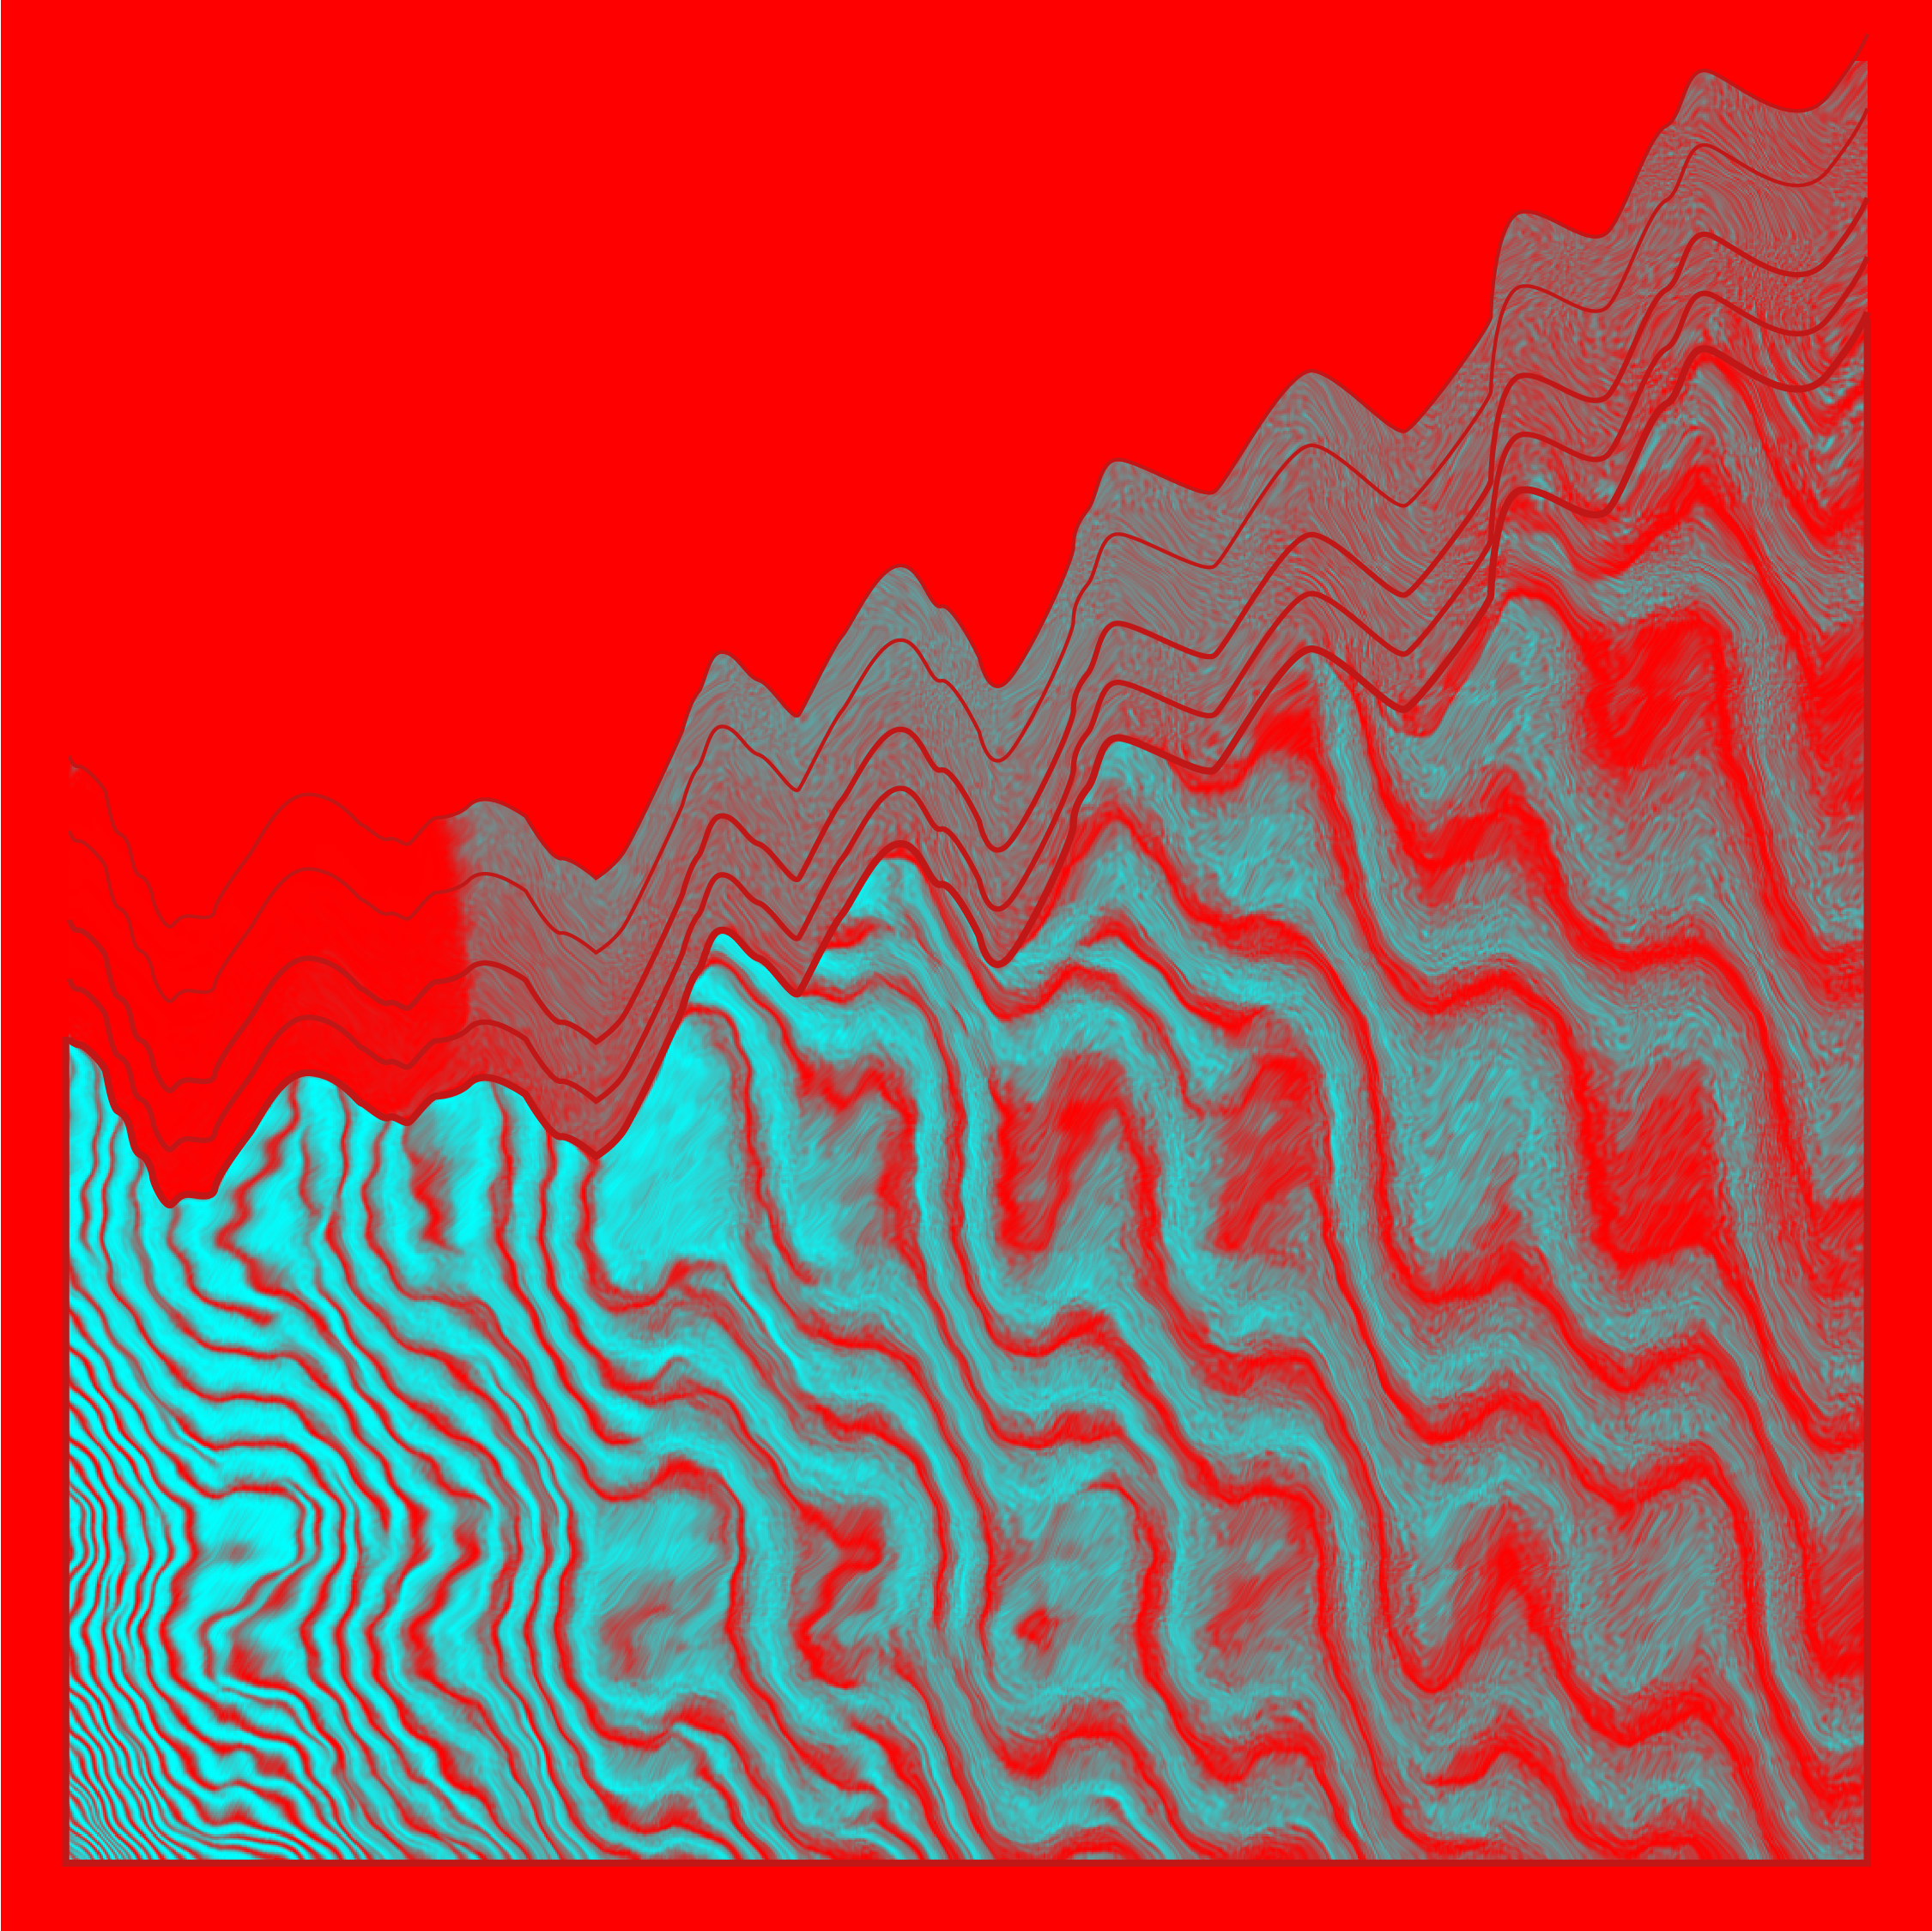 A red background with abstract wavy cyan blue pattern like tiger strips going half way up the image at an angle, into the top right corner.